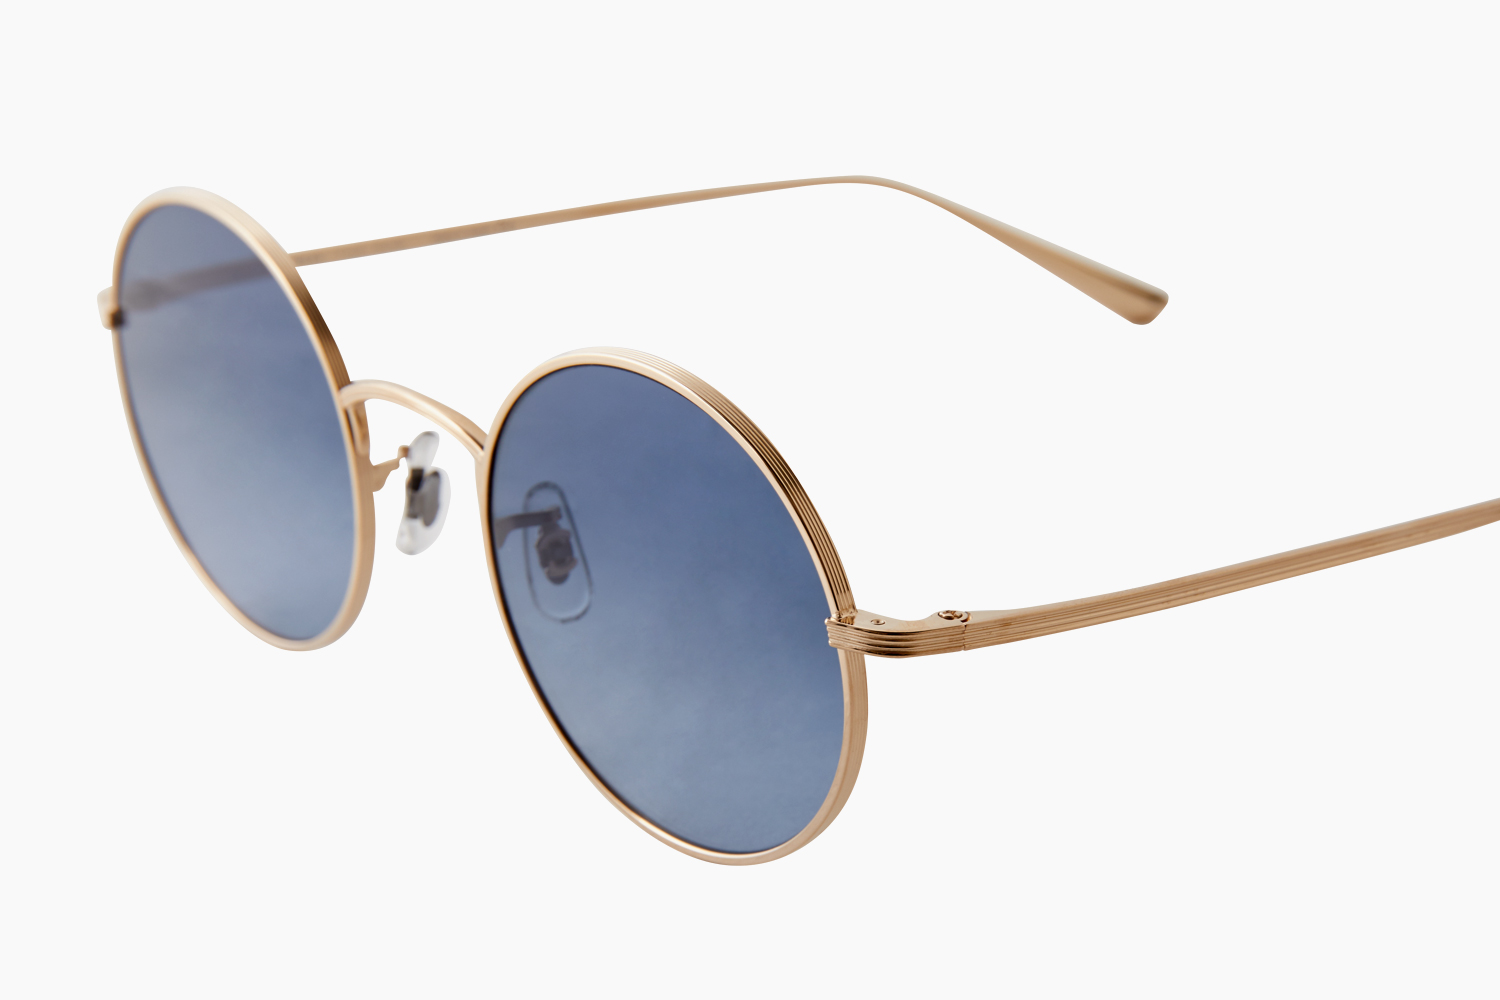 OLIVER PEOPLES THE ROW|After Midnight - Gold|OLIVER PEOPLES